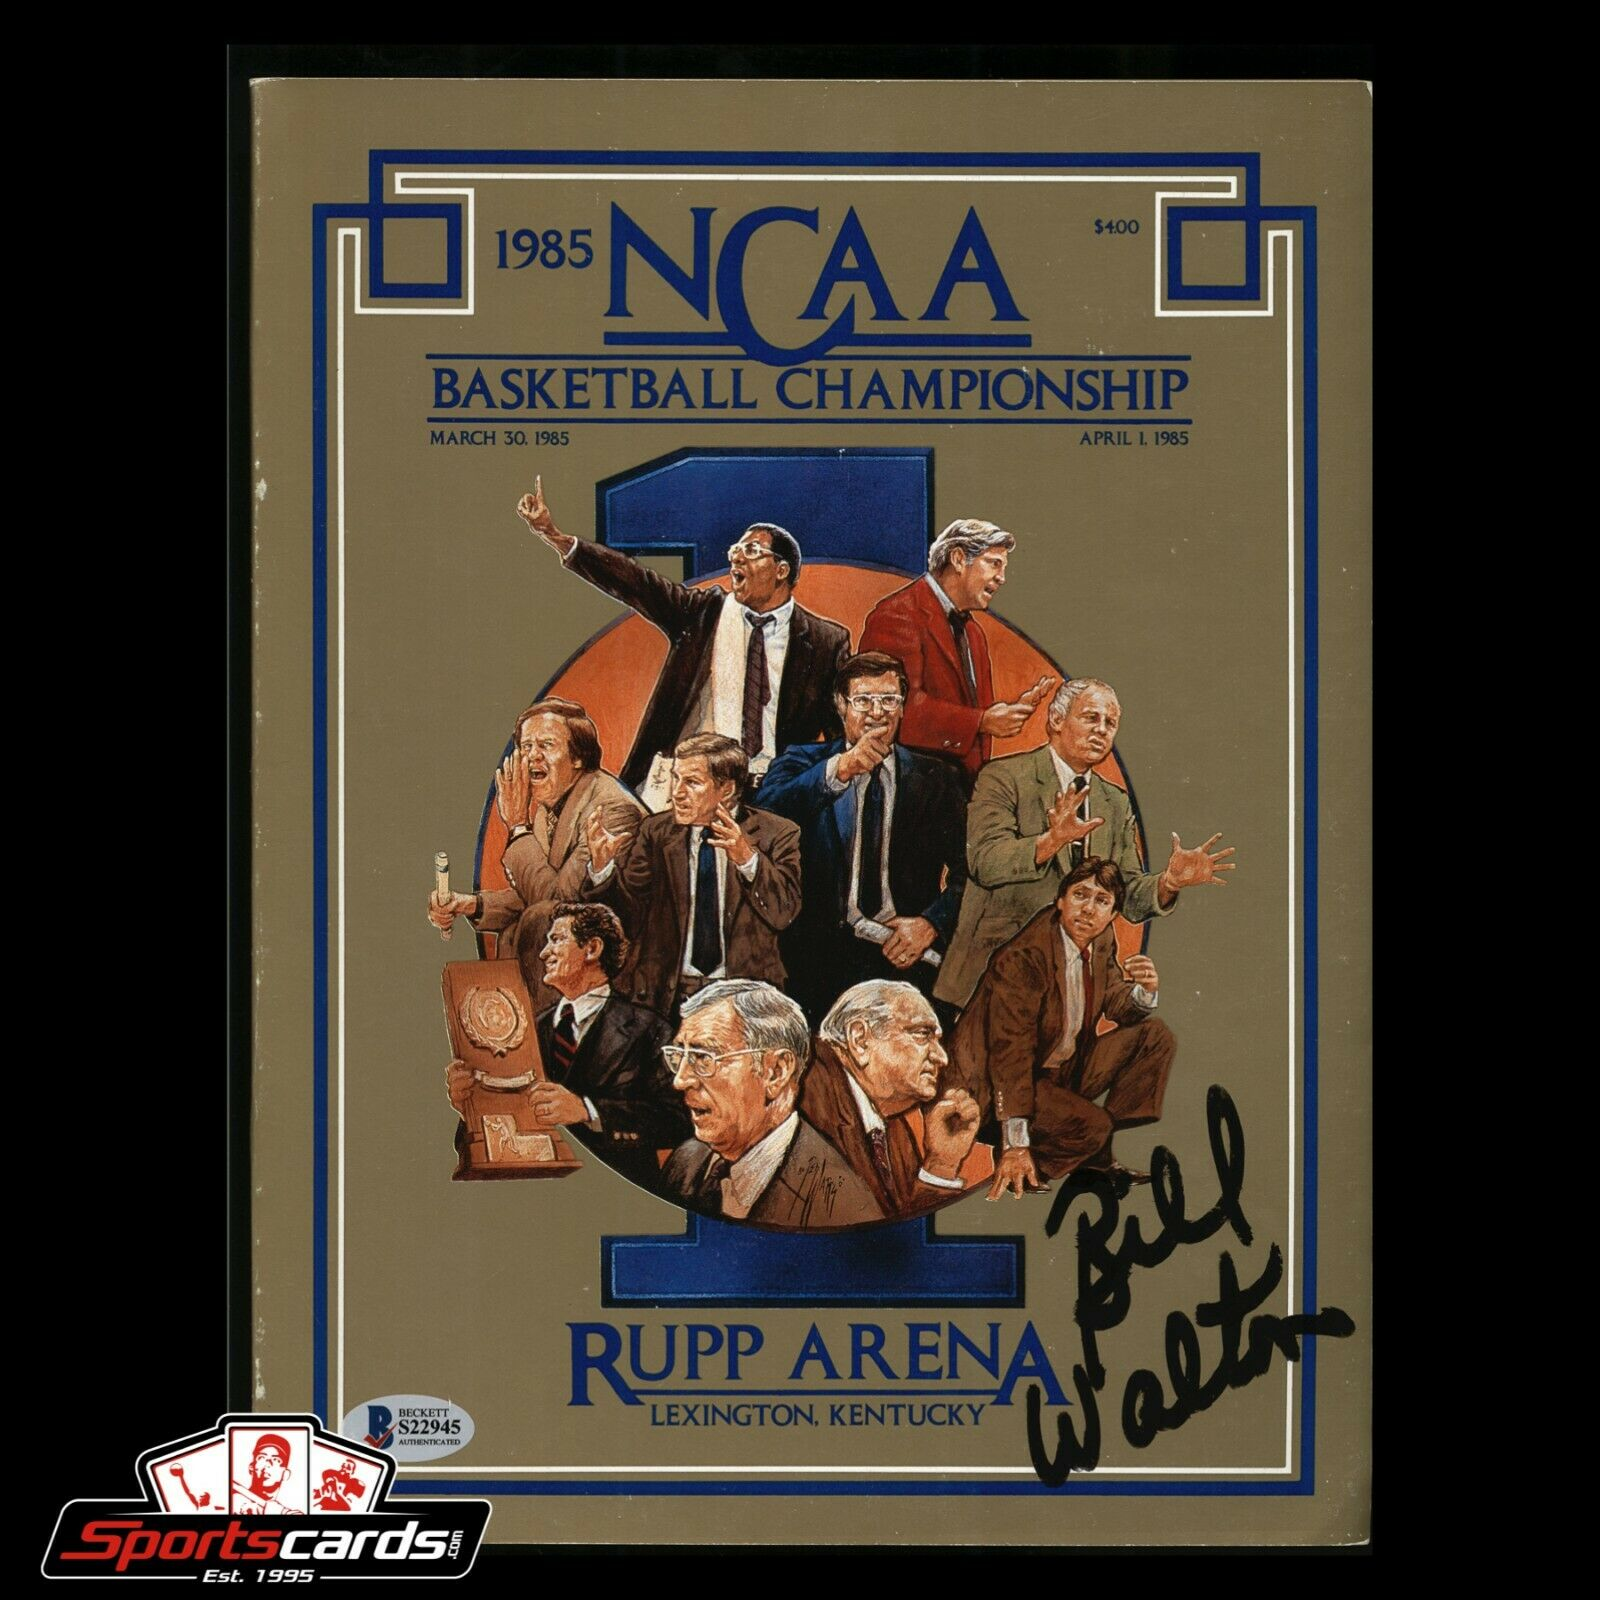 Bill Walton Signed 1985 NCAA Basketball Championship Program BAS Beckett Auto